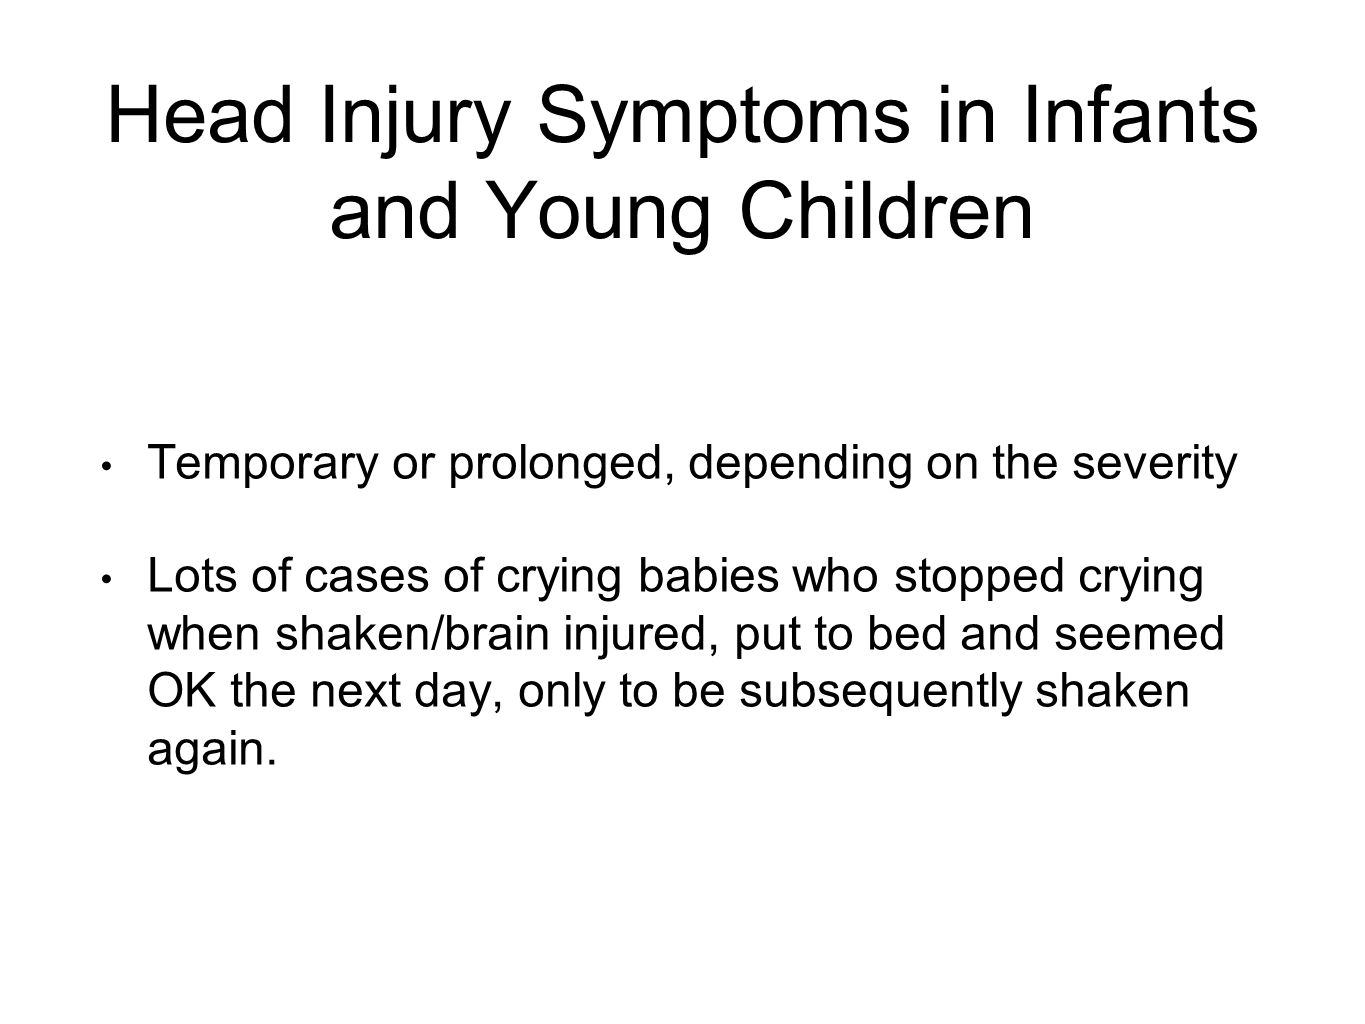 Head Injury Symptoms in Infants and Young Children Temporary or prolonged, depending on the severity Lots of cases of crying babies who stopped crying